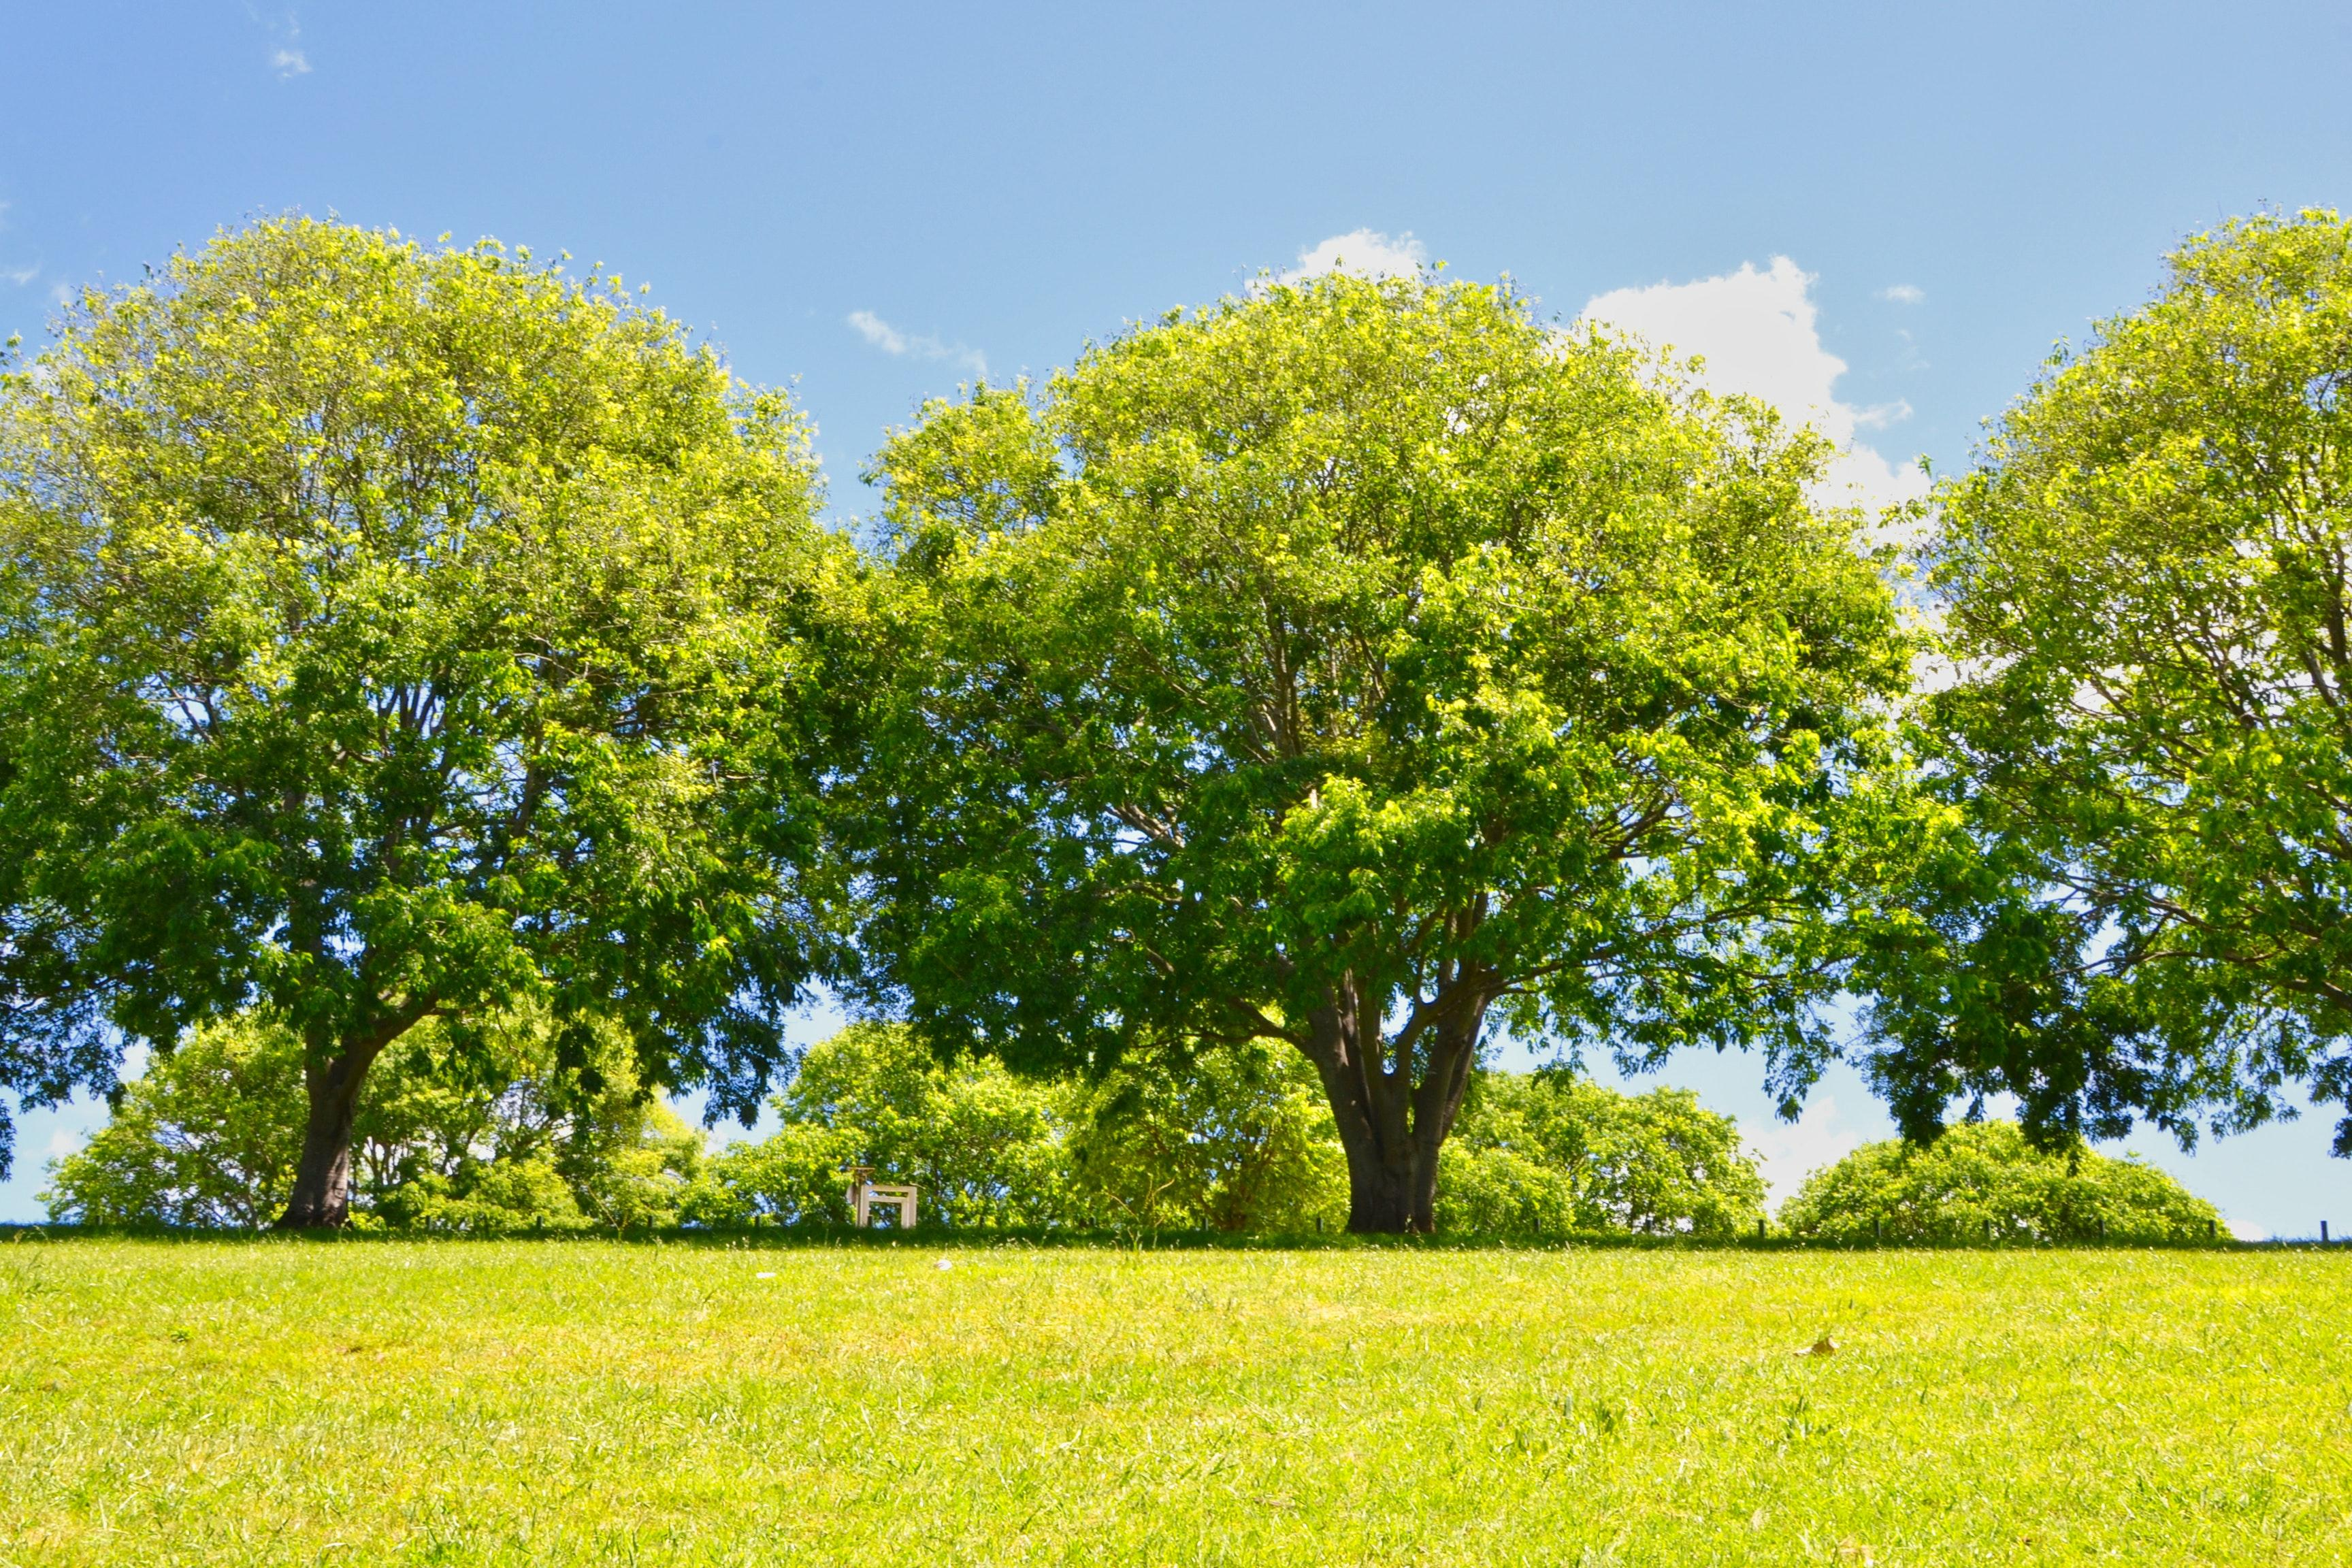 Free stock photo of park, sunny day, trees